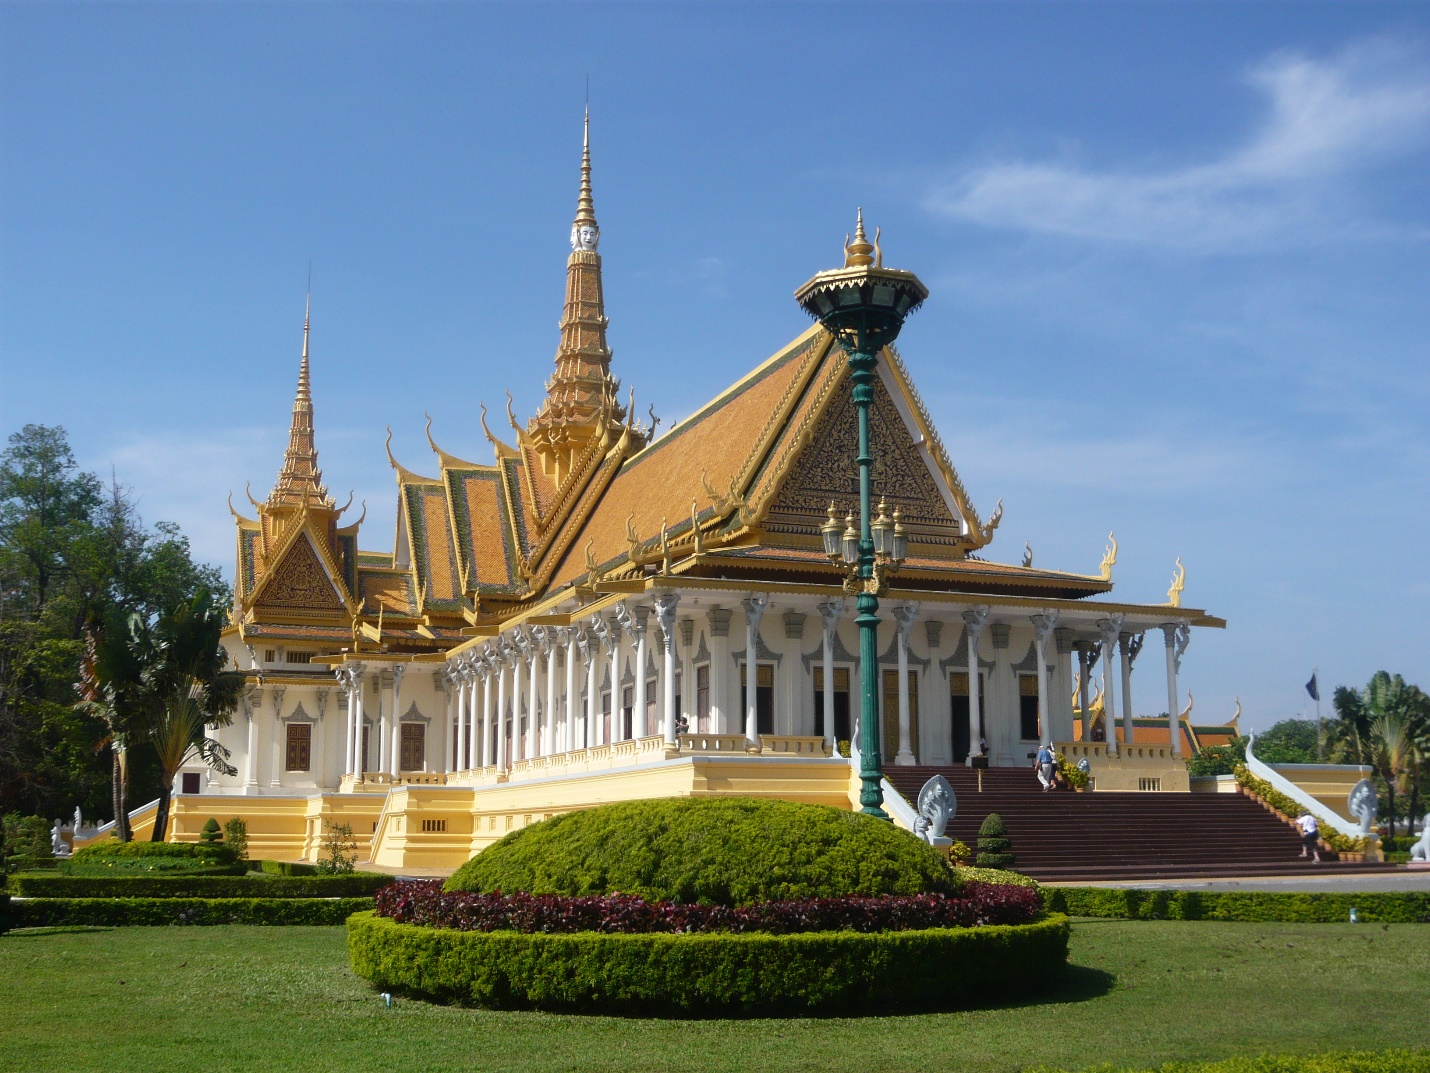 Cambodian Royal Palace seen from outside